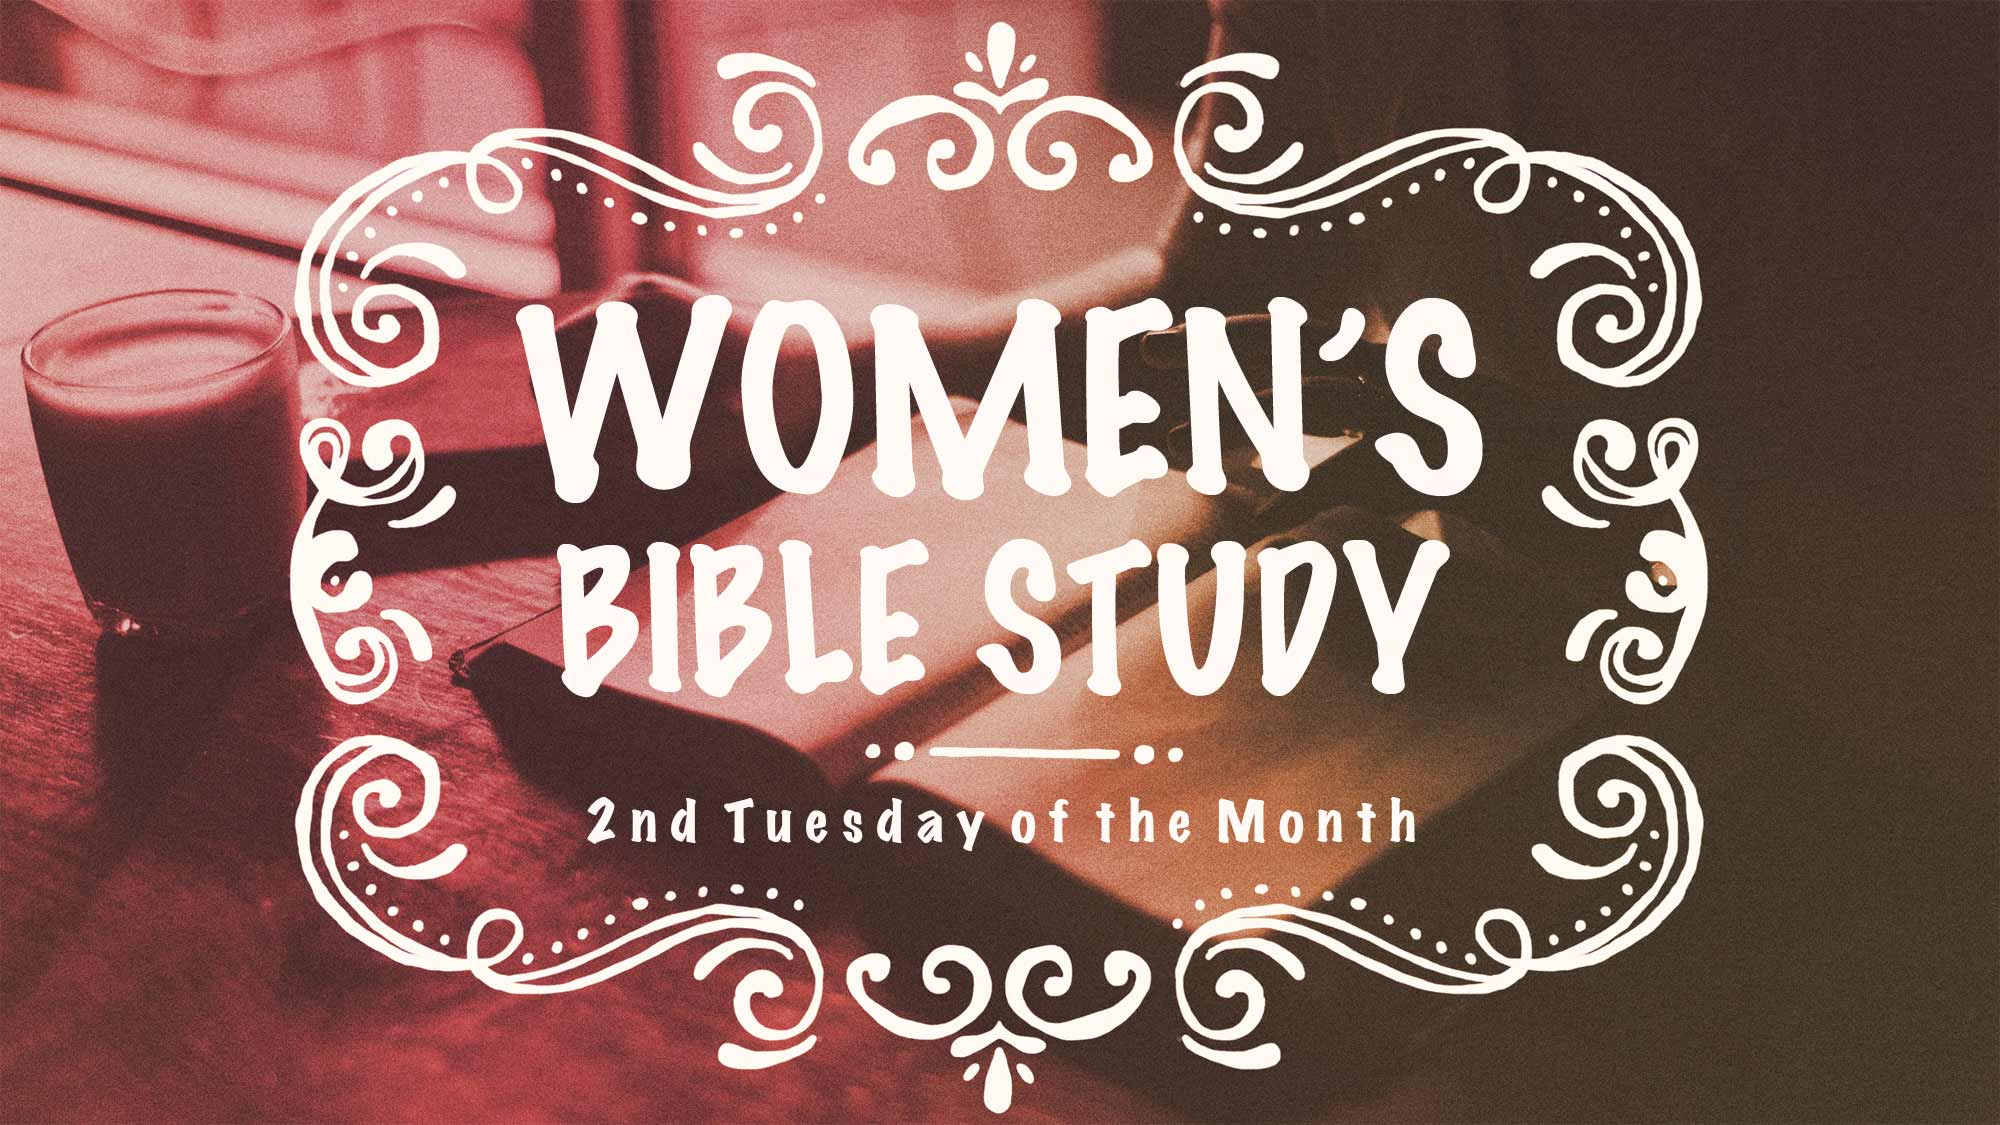 Women's-bible-study-event-(launch) image